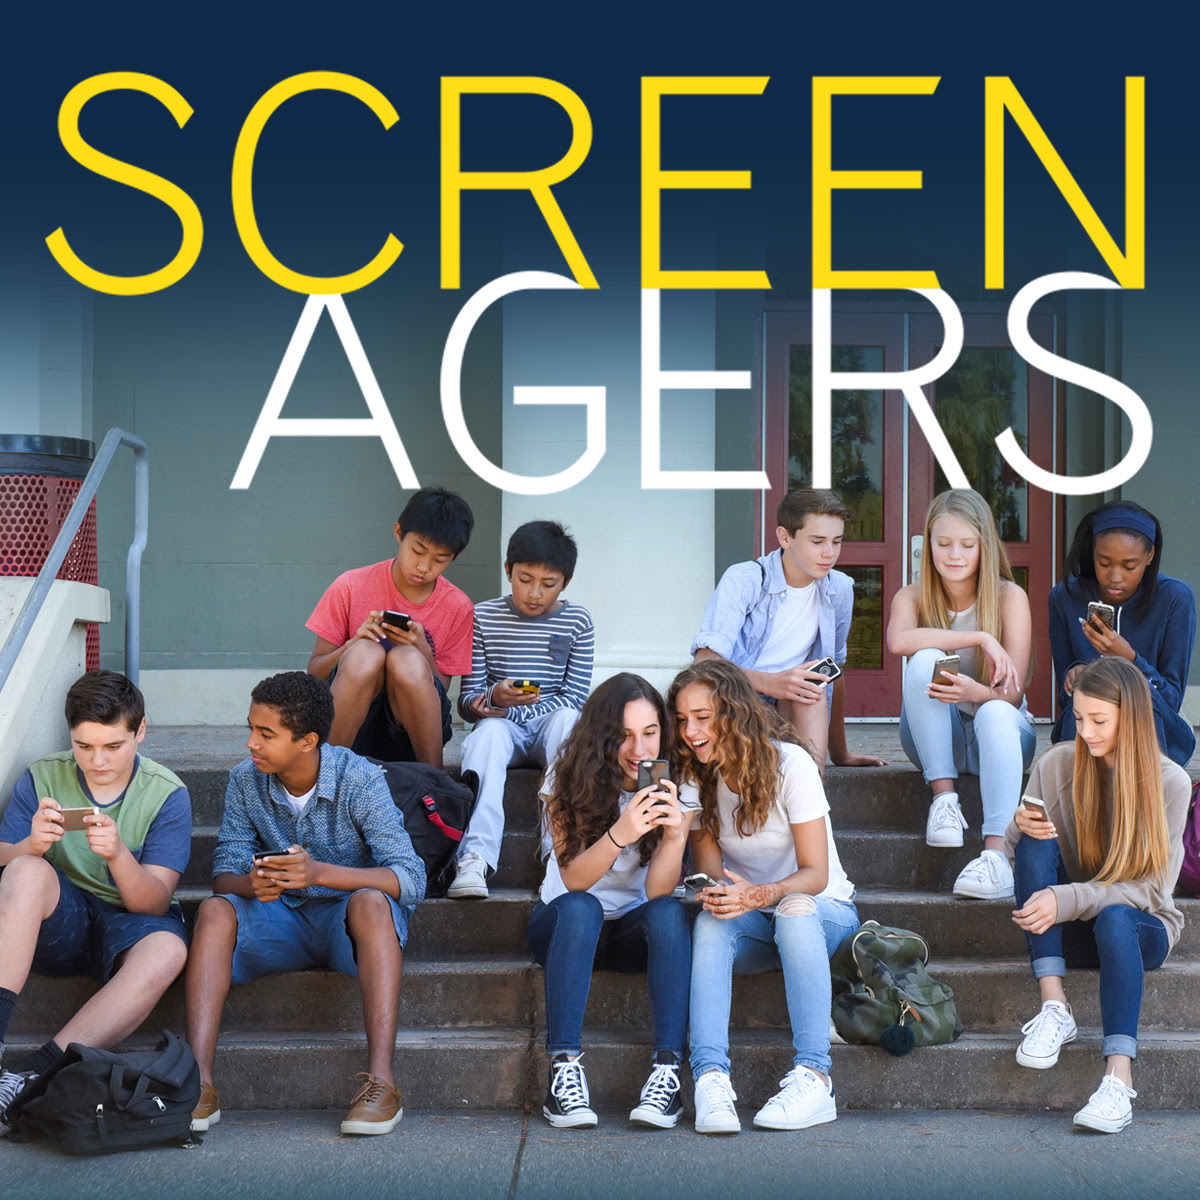 Screenagers Film Presented By The Flourishing Center